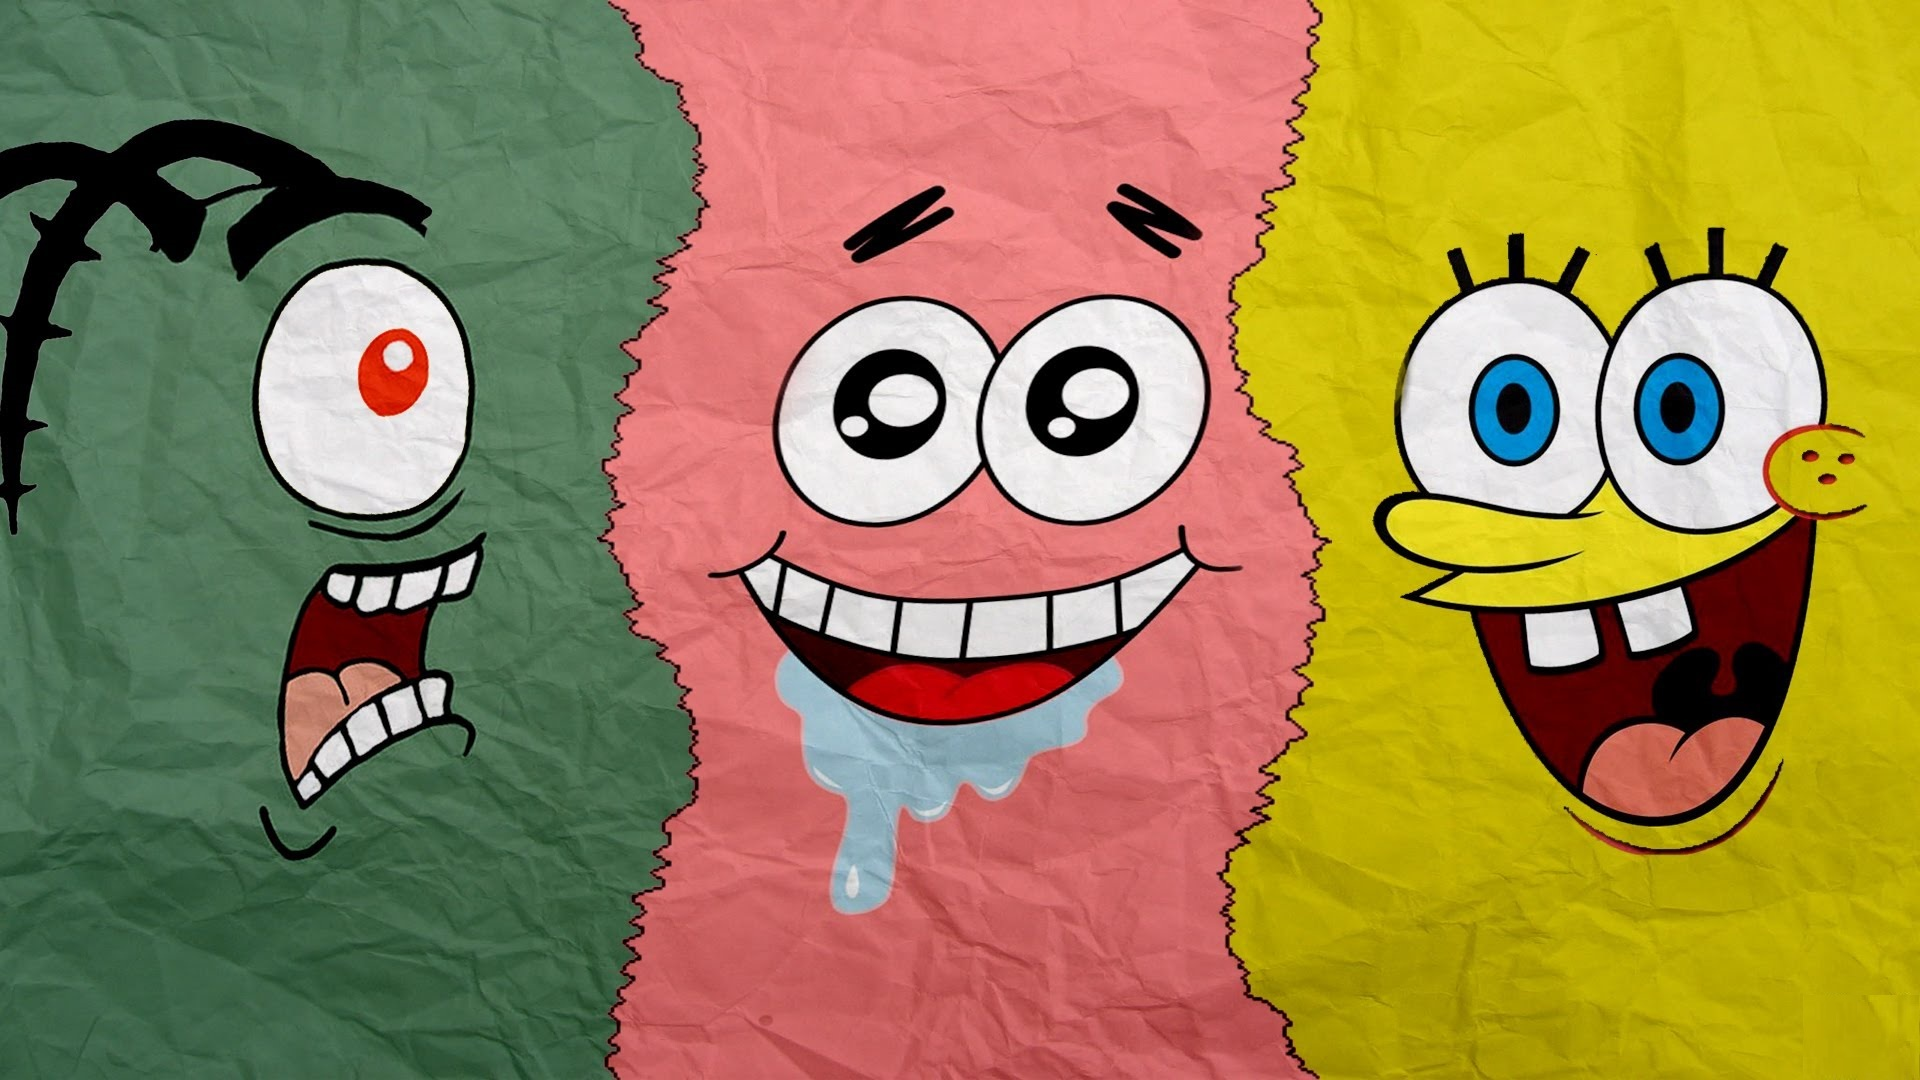 images about SpongeBob SquarePants on Pinterest  Bobs 1920x1080